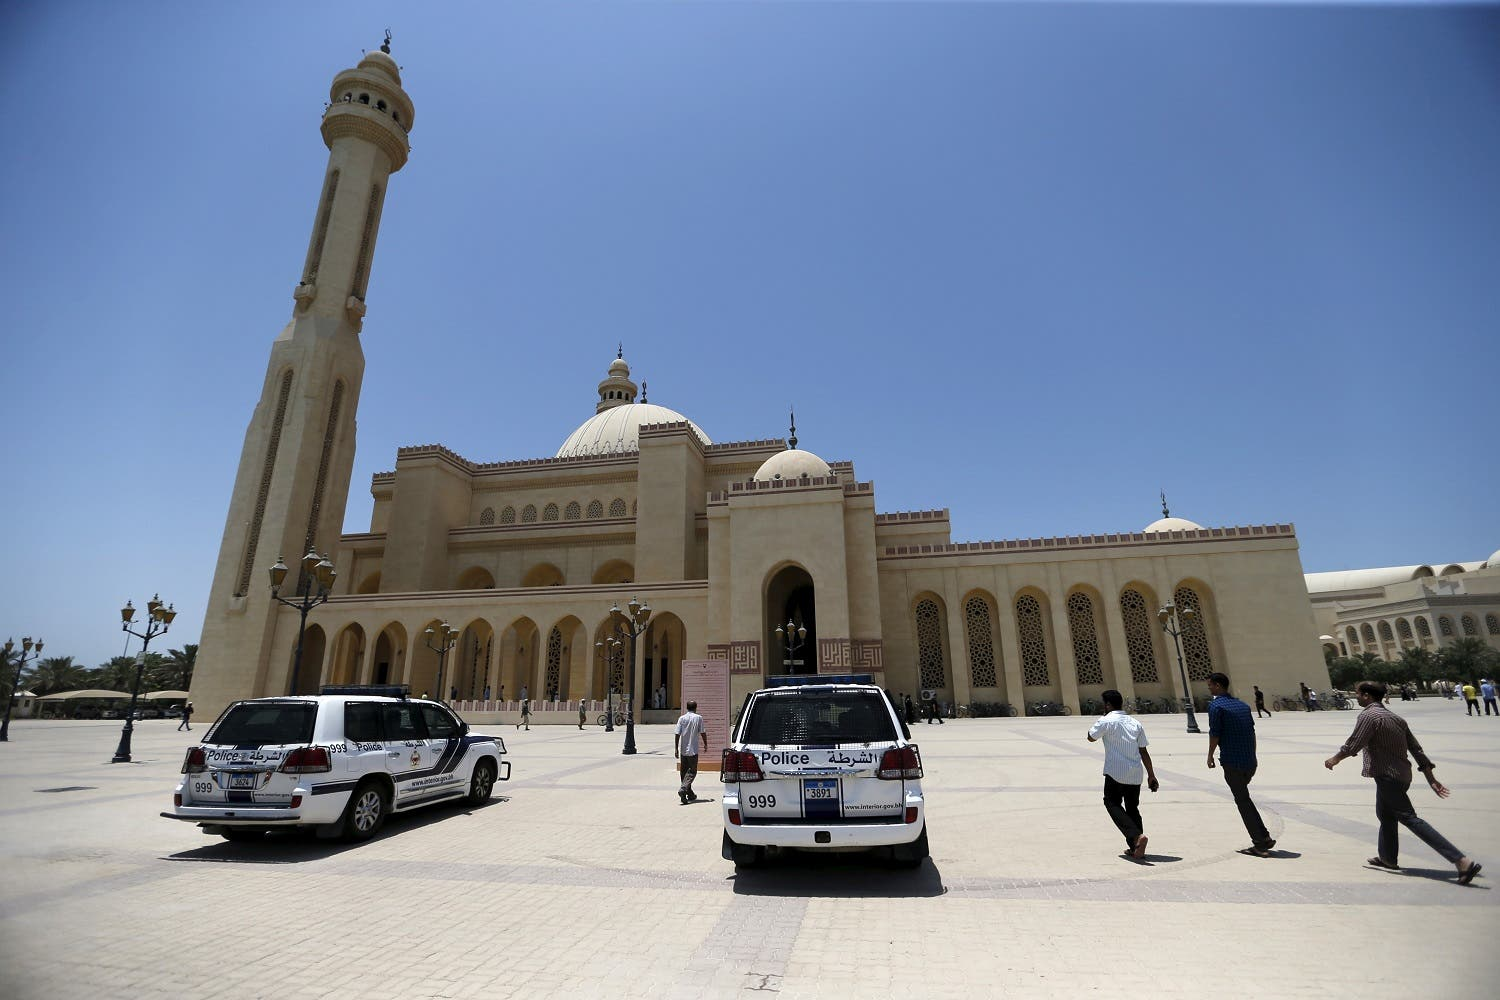 Police patrol vehicles are parked outside the main entrances of Bahrain's al-Fateh Grand Mosque. (File photo: Reuters)